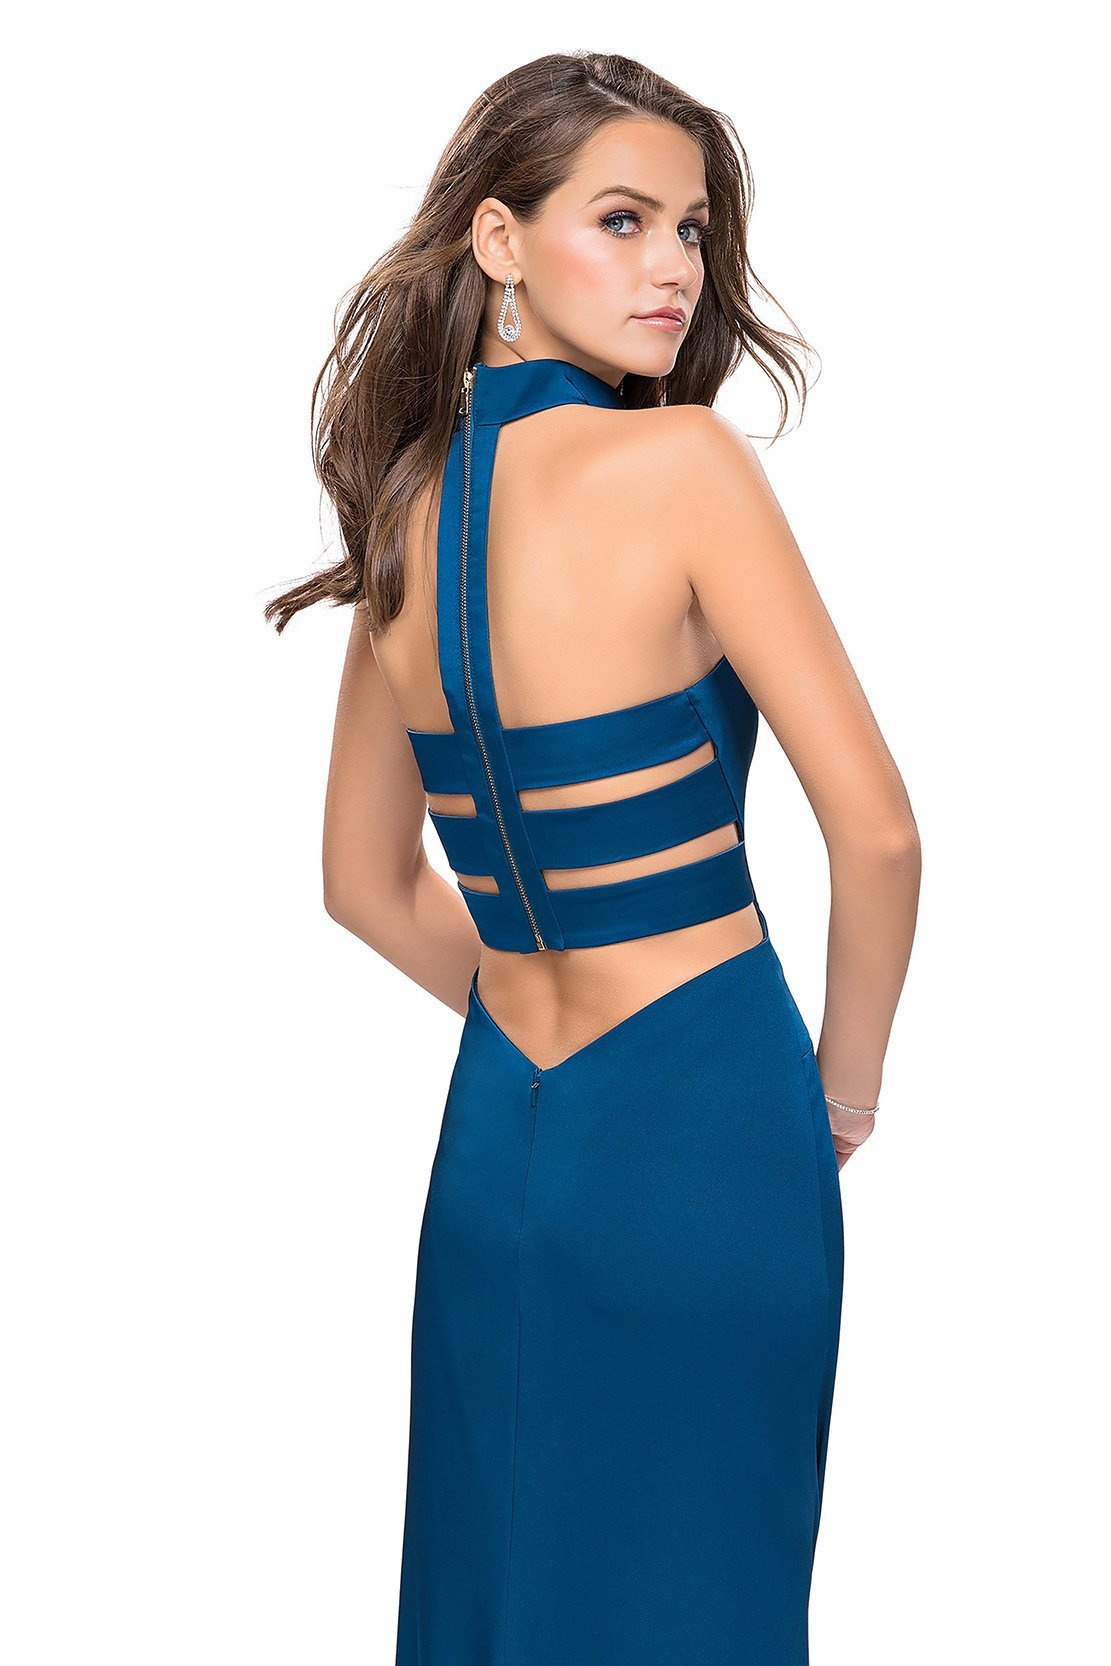 La Femme - Choker Style Fitted High Slit Dress 25735 In Blue